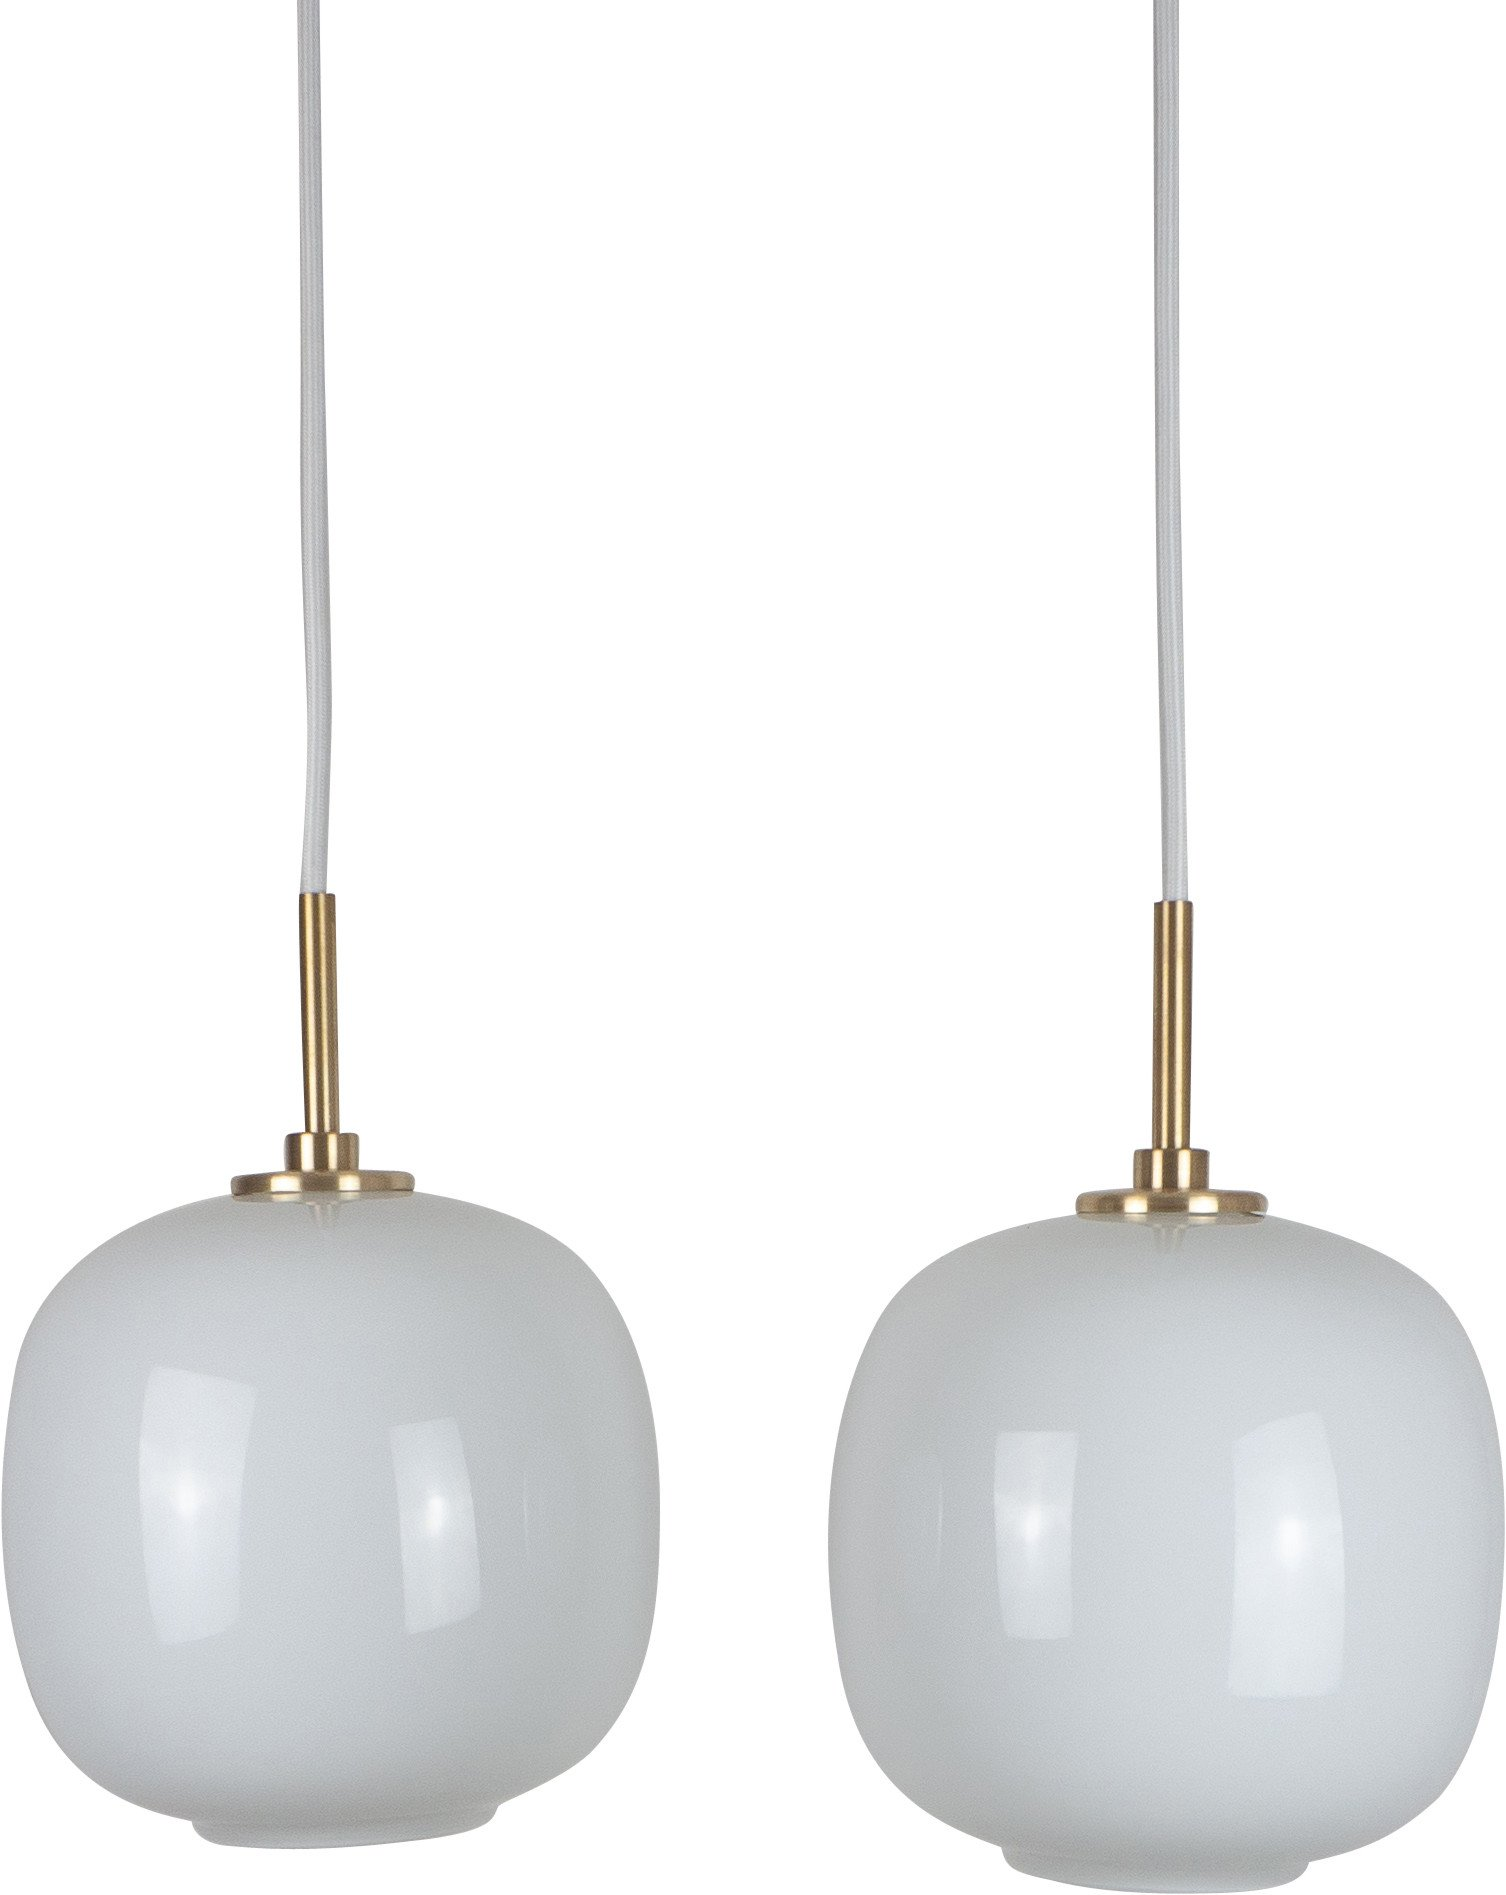 Pair of Pendant Lamps Radiohus VL45 by V. Lauritzen for Louis Poulsen, Denmark